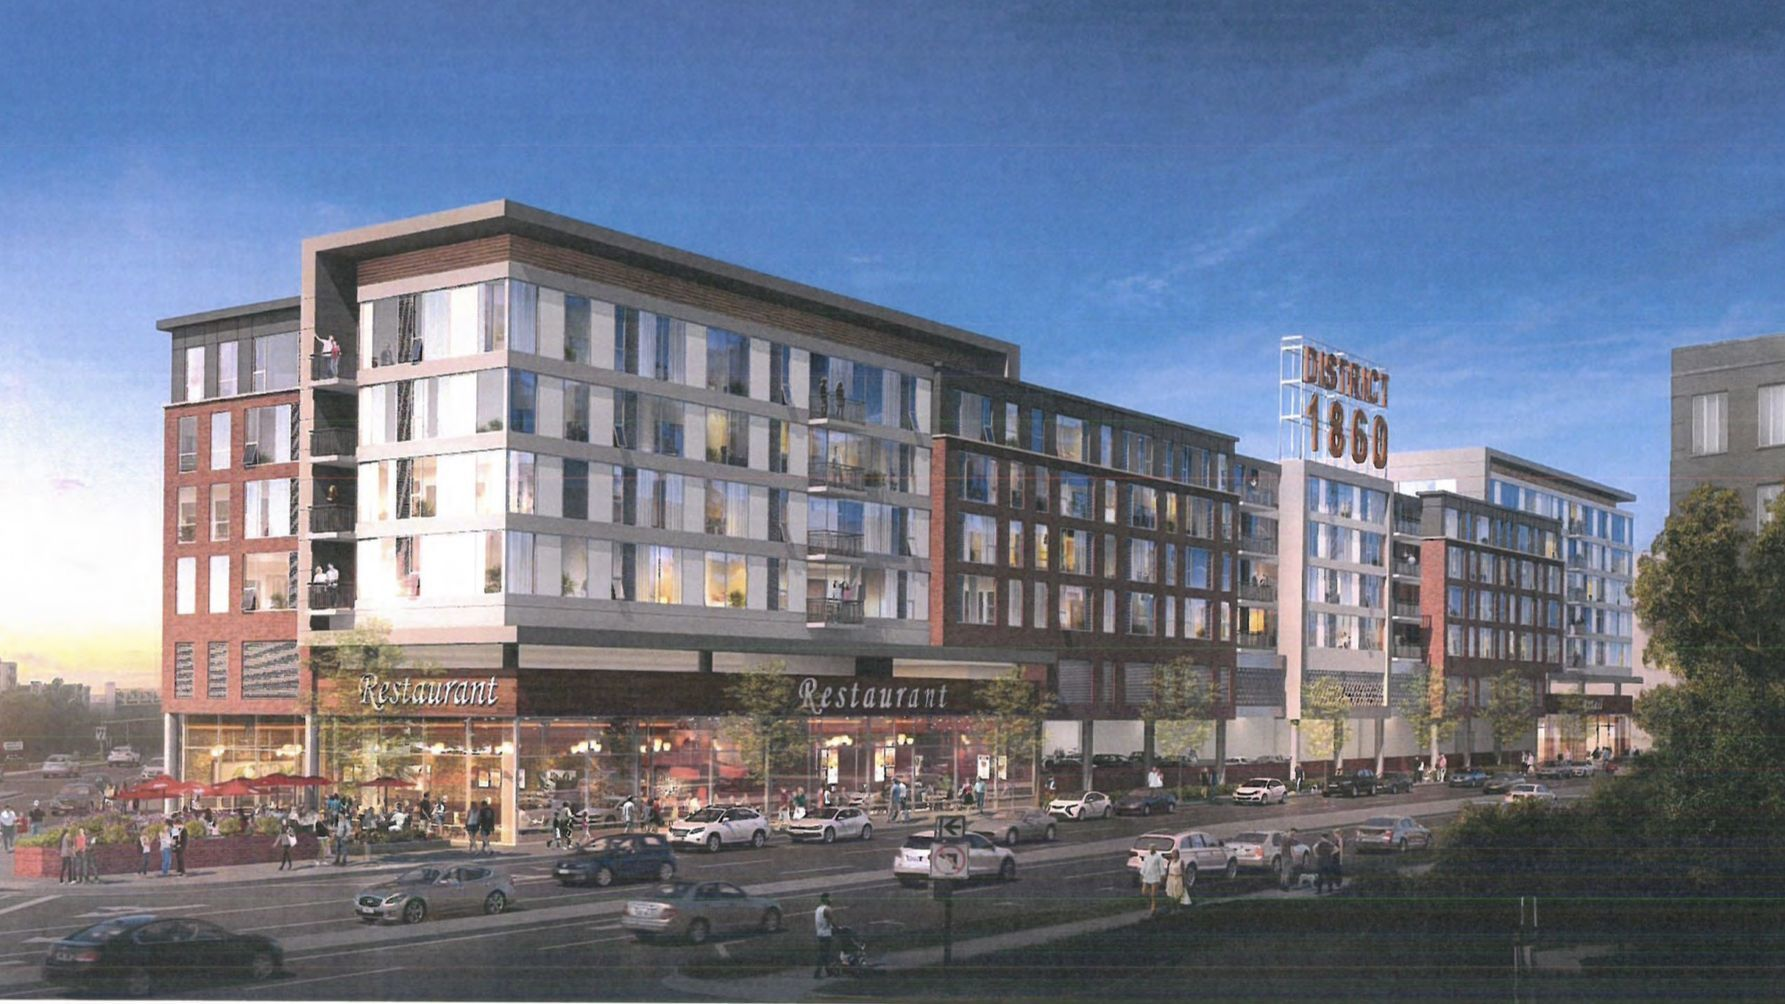 'It's monumental': Lincolnwood approves redevelopment agreement for old Purple Hotel site